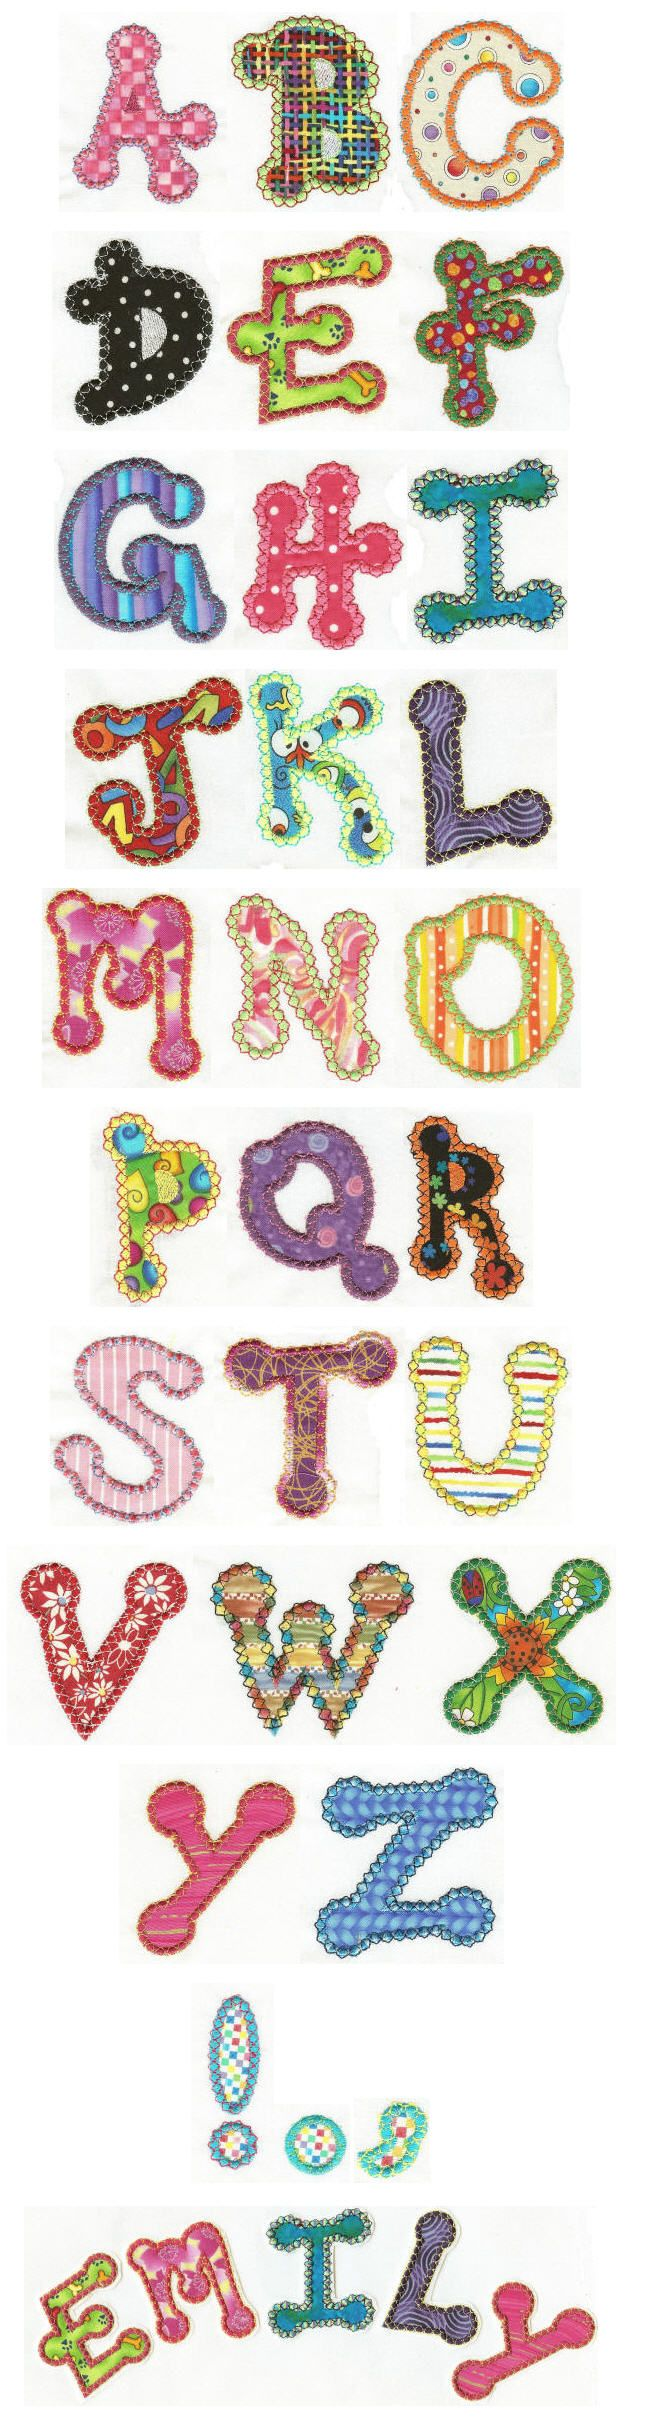 free applique alphabet patterns | Embroidery | Free machine embroidery designs | Dotty Applique Alphabet- nO LONGER FREE